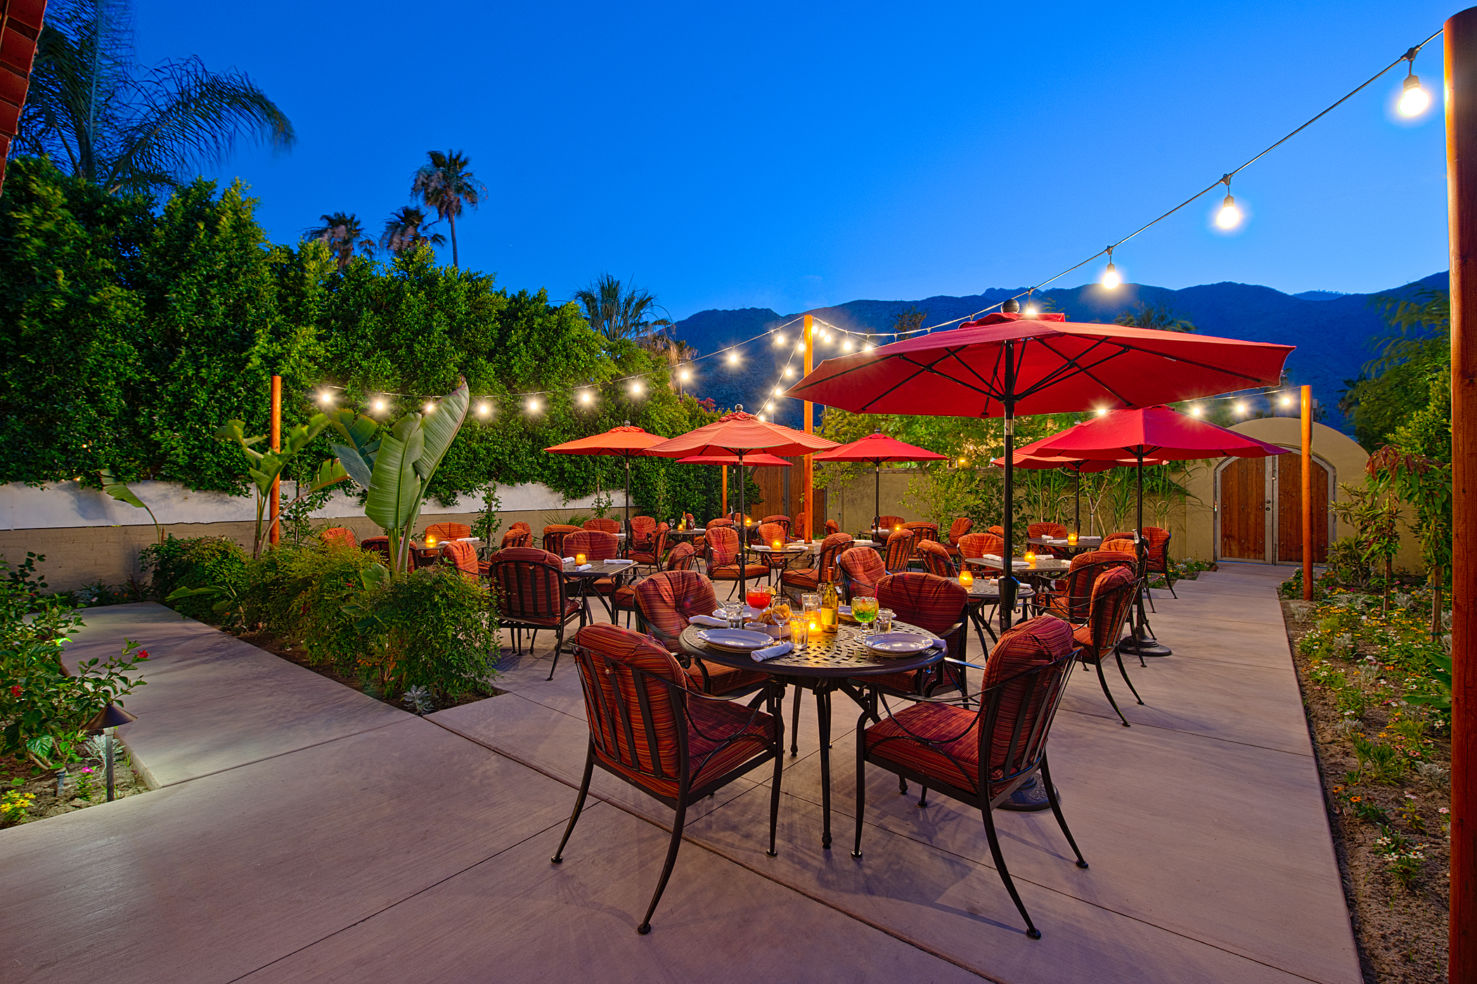 Budget Travel Palm Springs Hotels